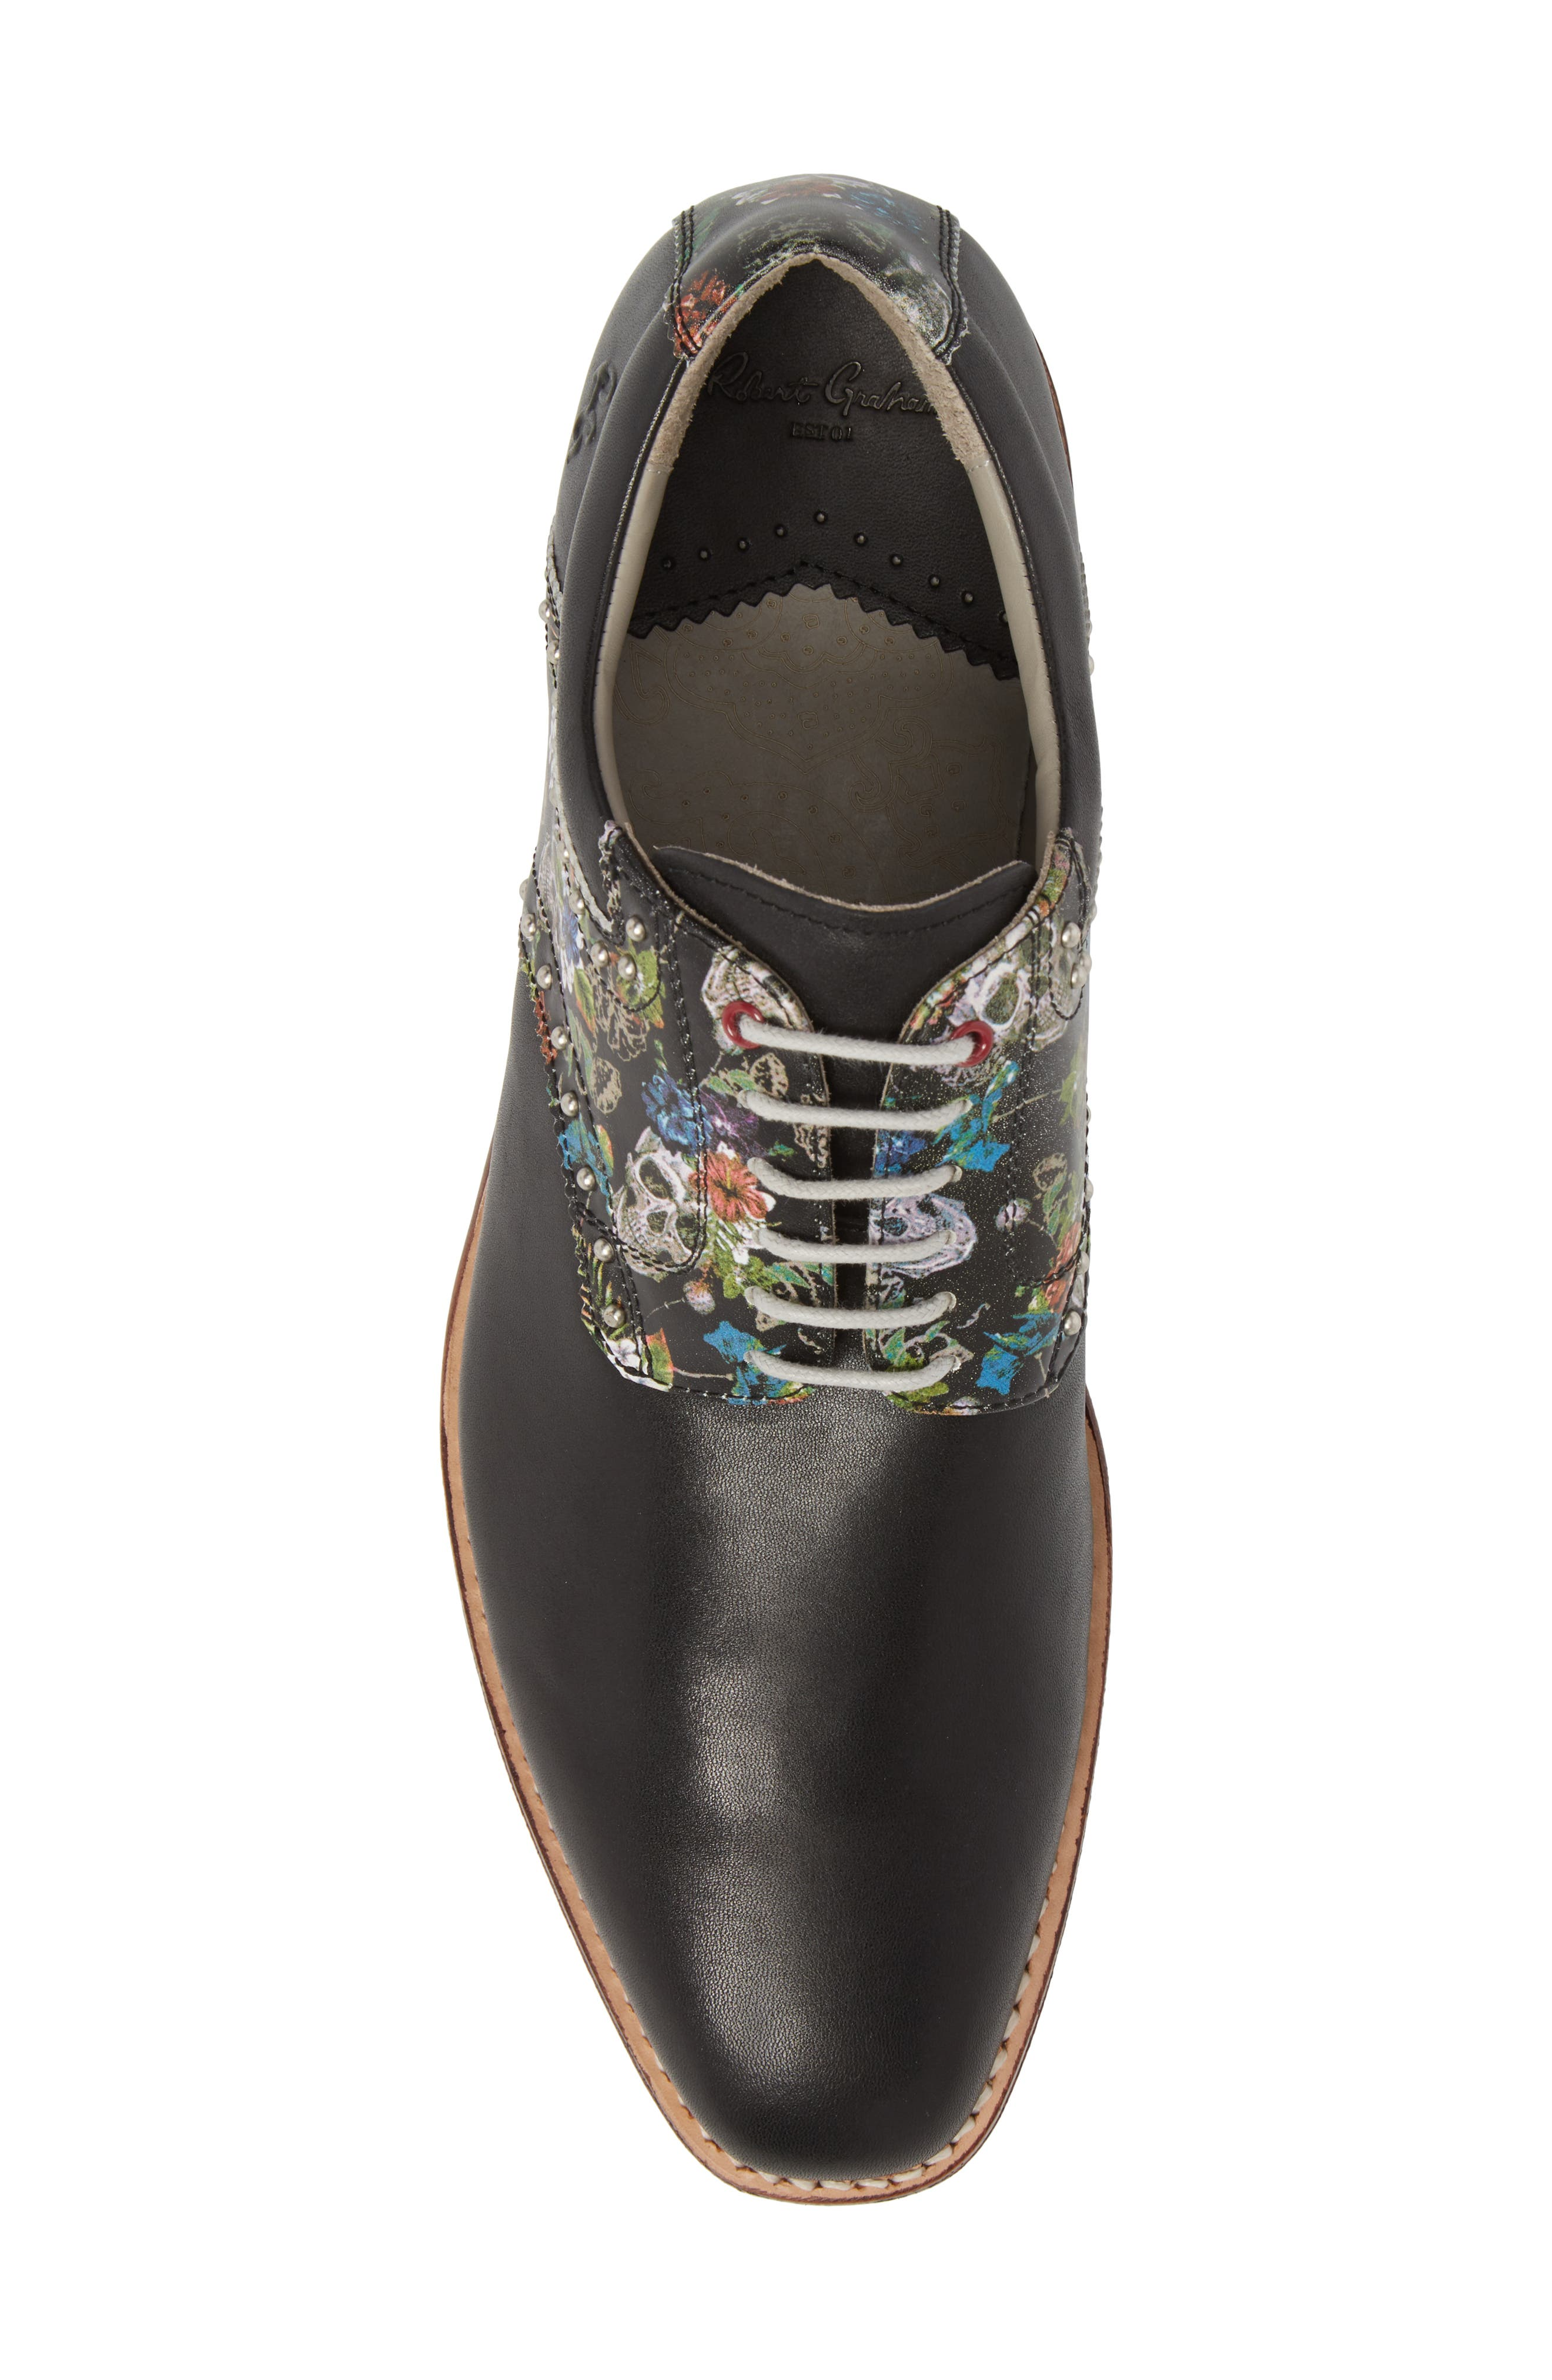 Legend Wingtip Oxford with Removable Cleats,                             Alternate thumbnail 5, color,                             Black Leather